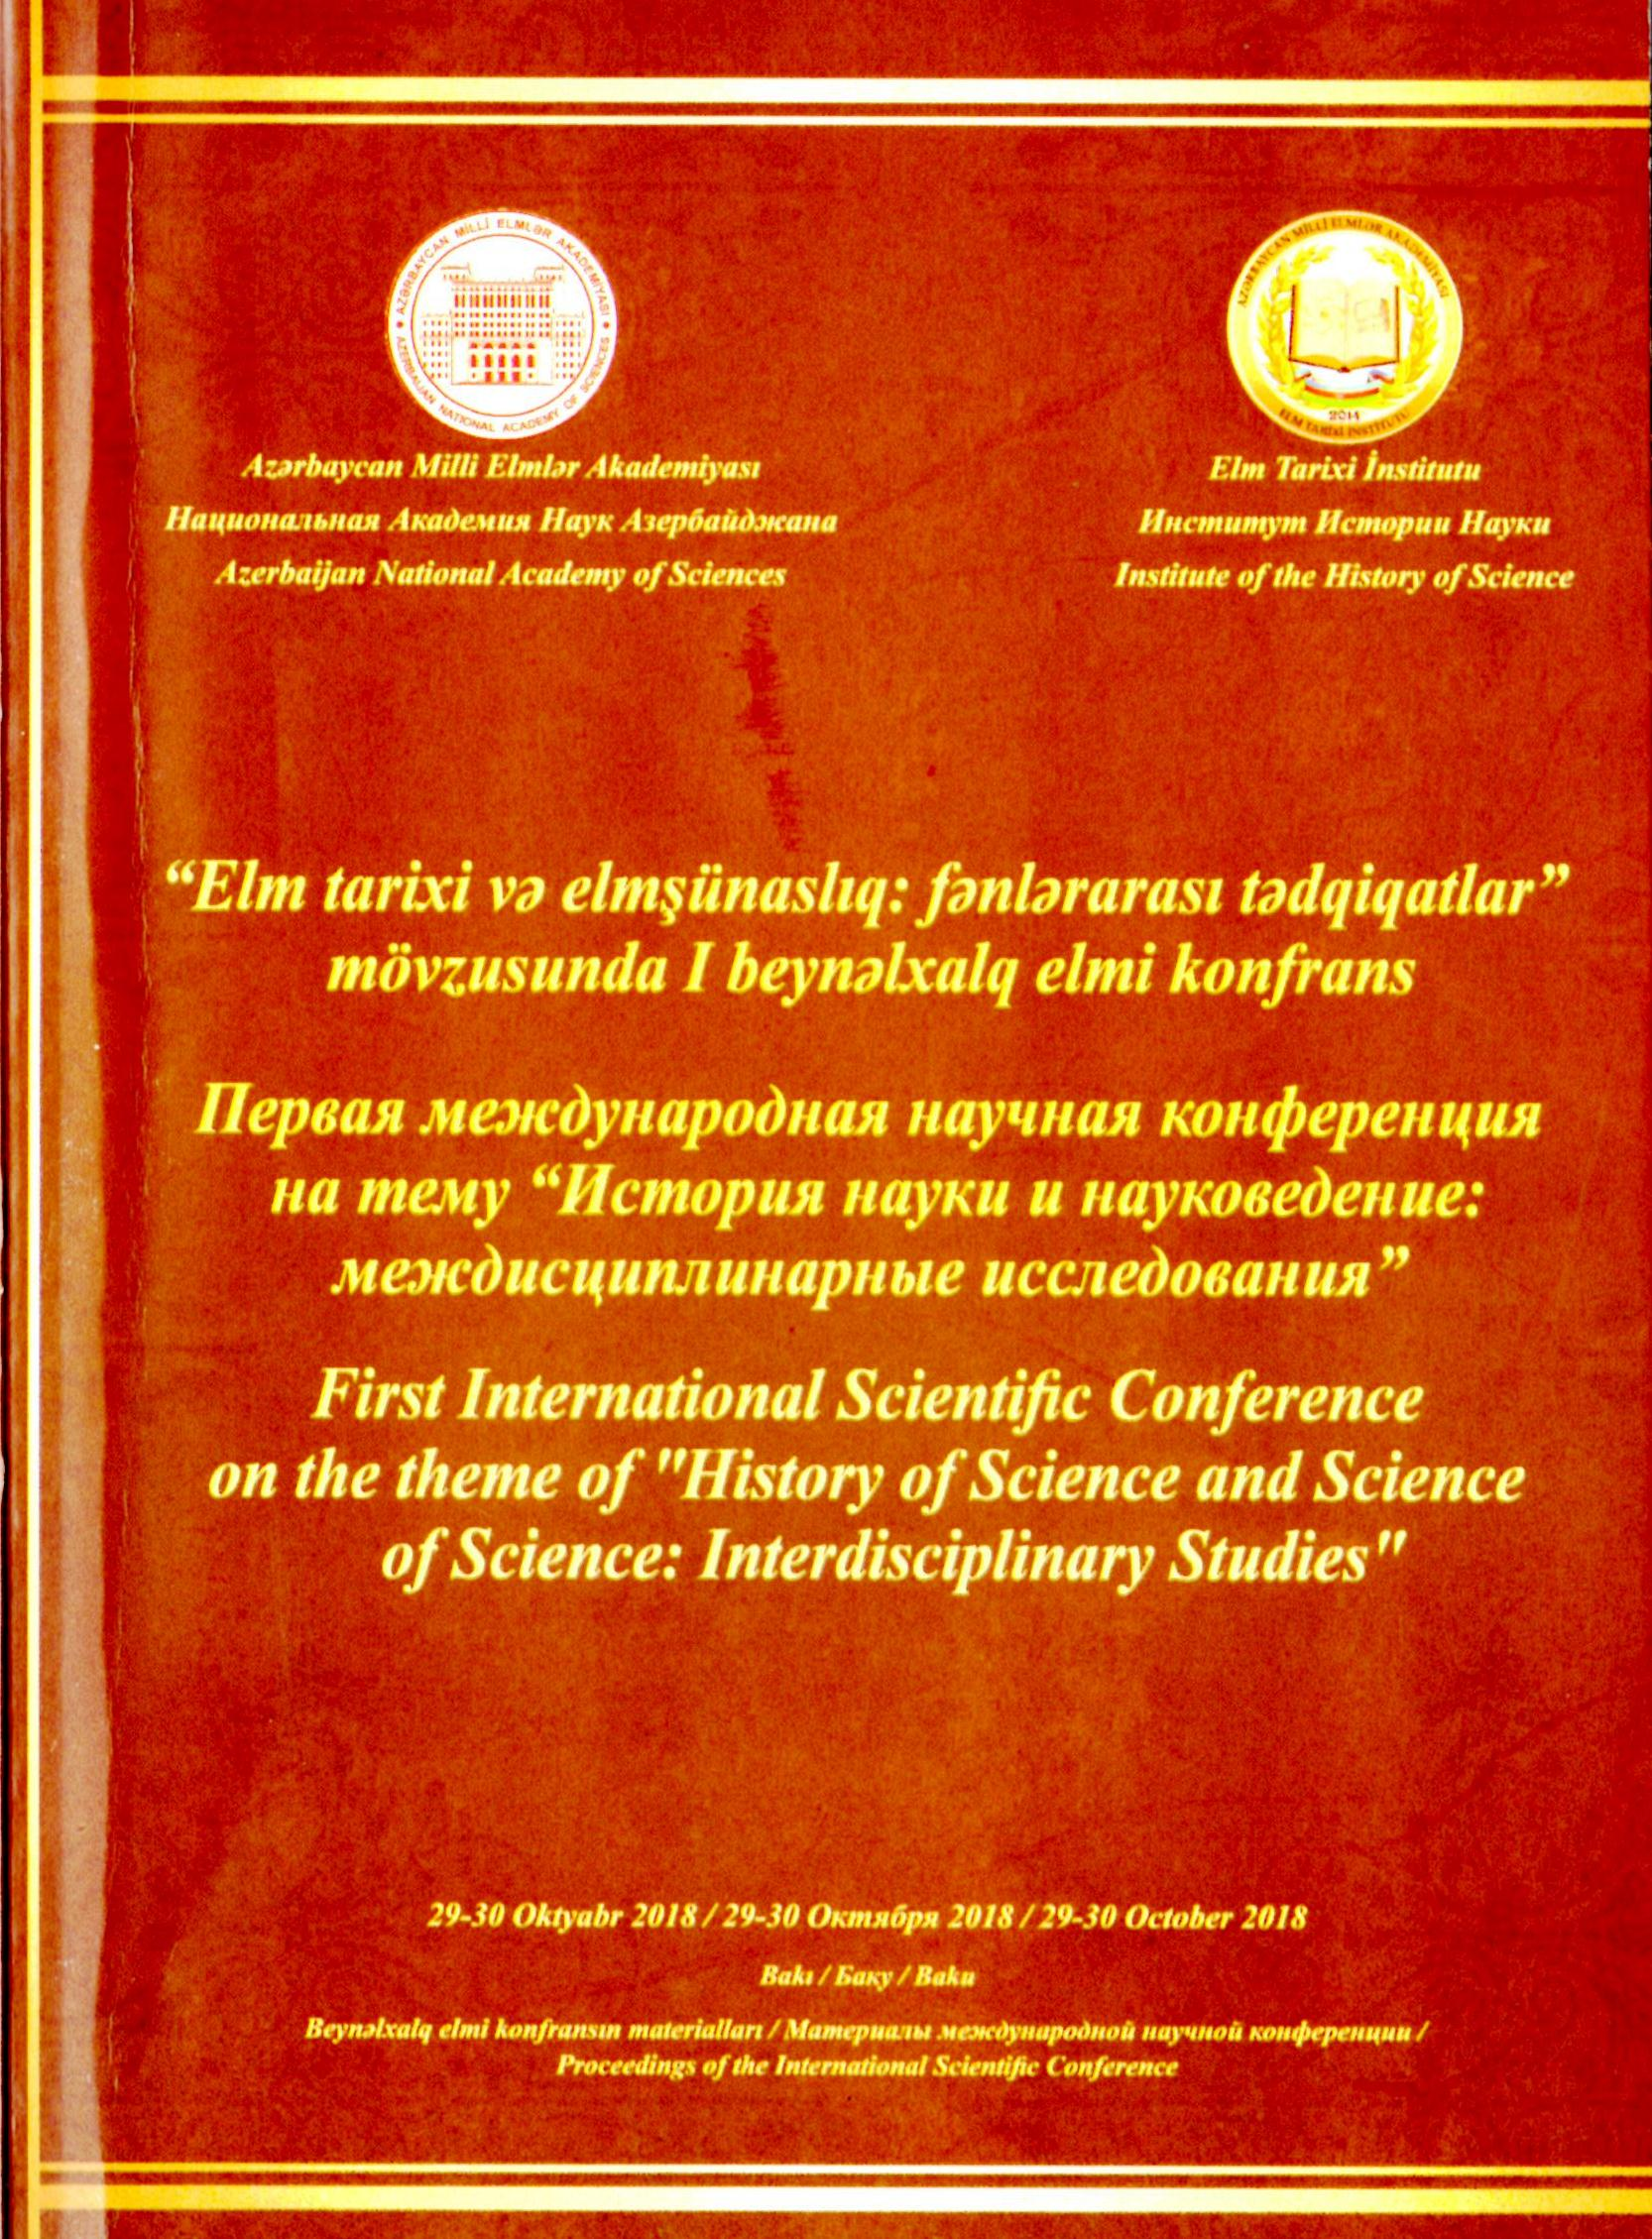 "I International scientific conference on ""History of Science and Science: Interdisciplinary Studies"" was held in Baku, hosted by ANAS Institute of Science History on 29th - 30th of October  2018"